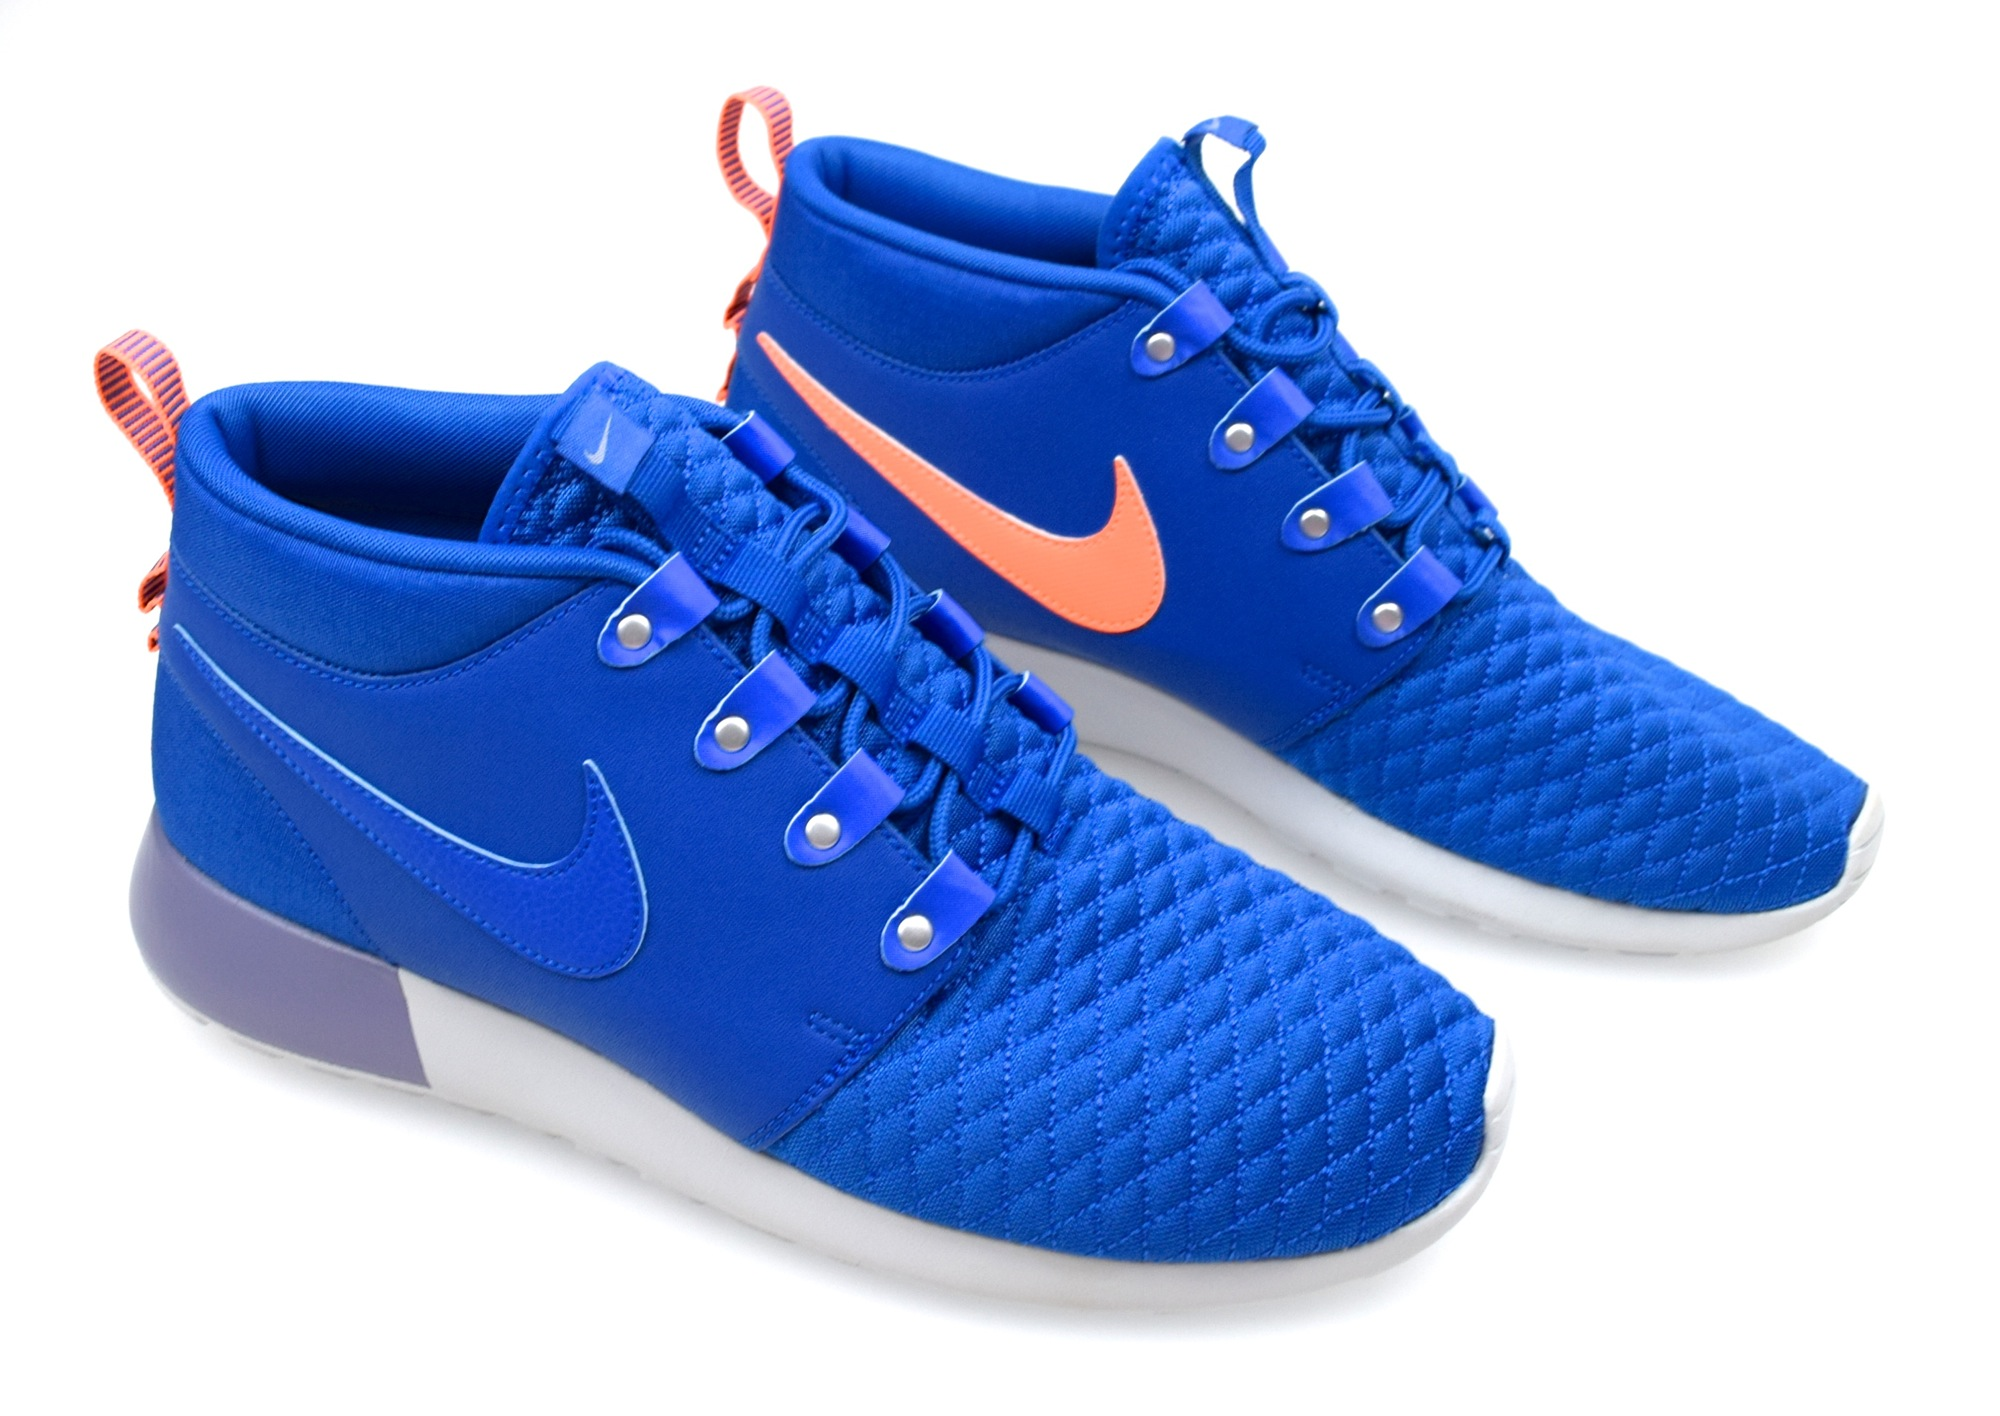 8f923e7a9a9b Details about NIKE MAN SNEAKER SHOES CASUAL FREE TIME NIKE ROSHE RUN  SNEAKERBOOT 615601 480